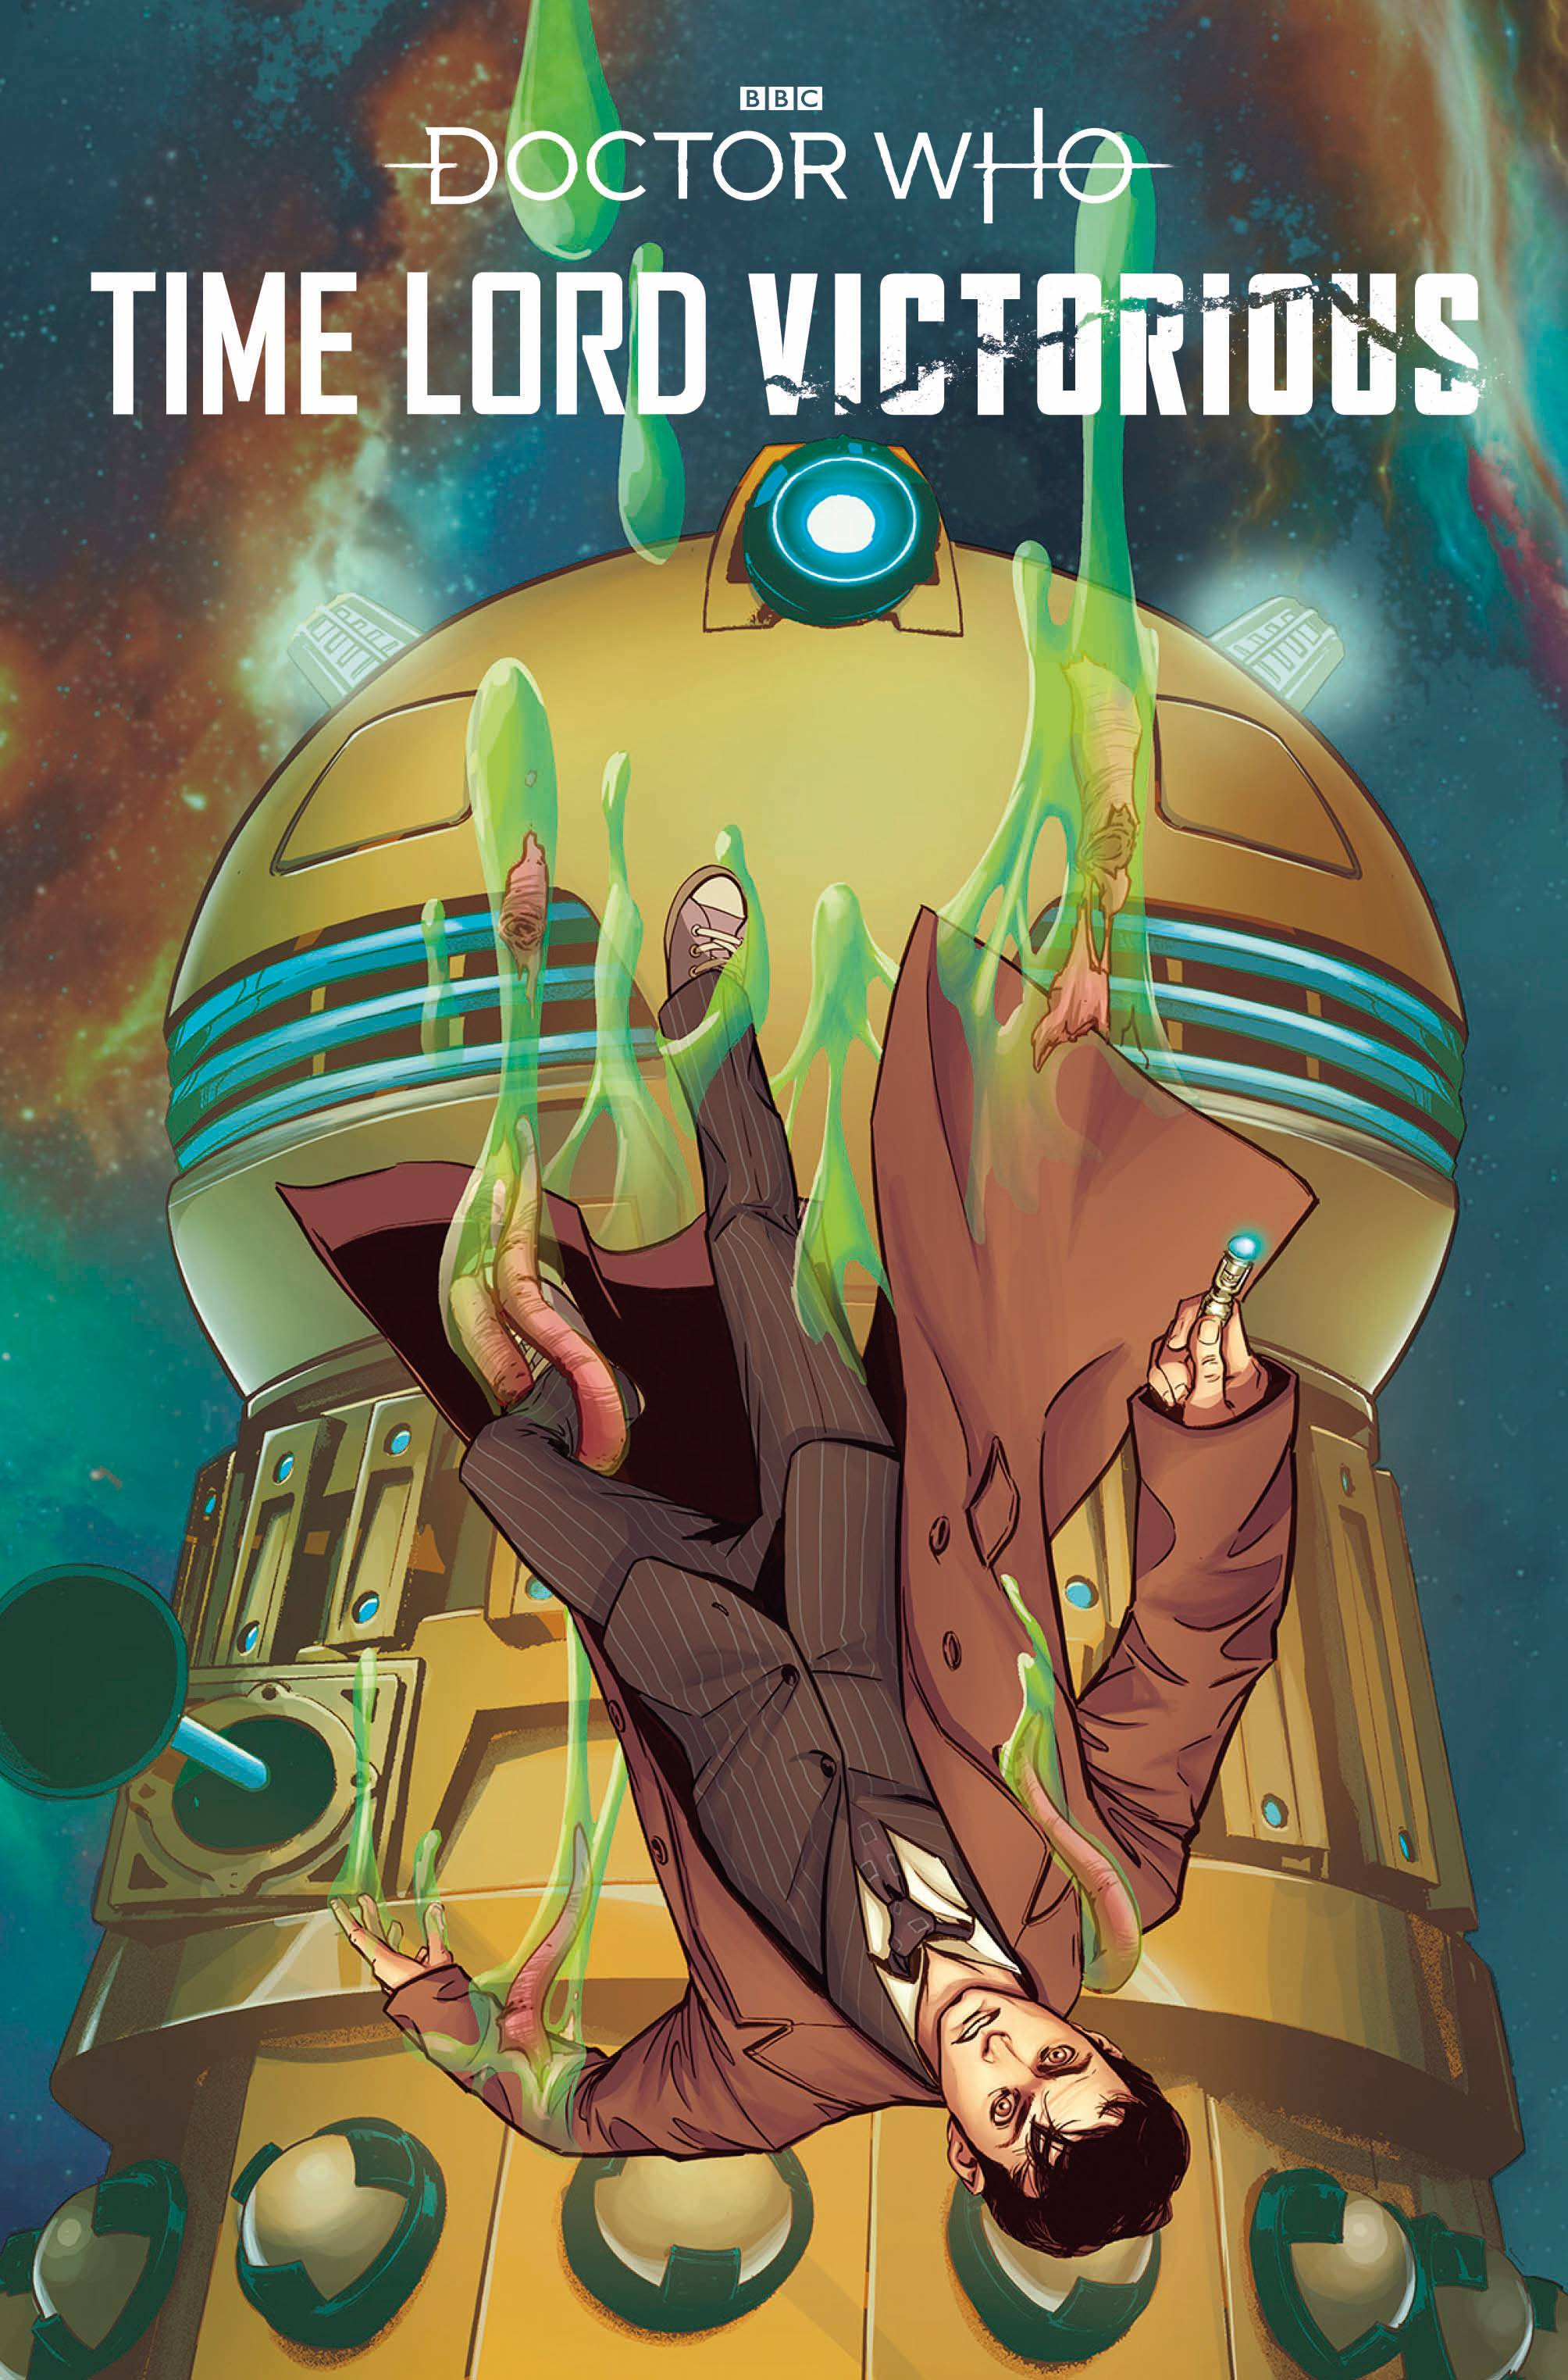 DOCTOR WHO TIME LORD VICTORIOUS #1 CVR B